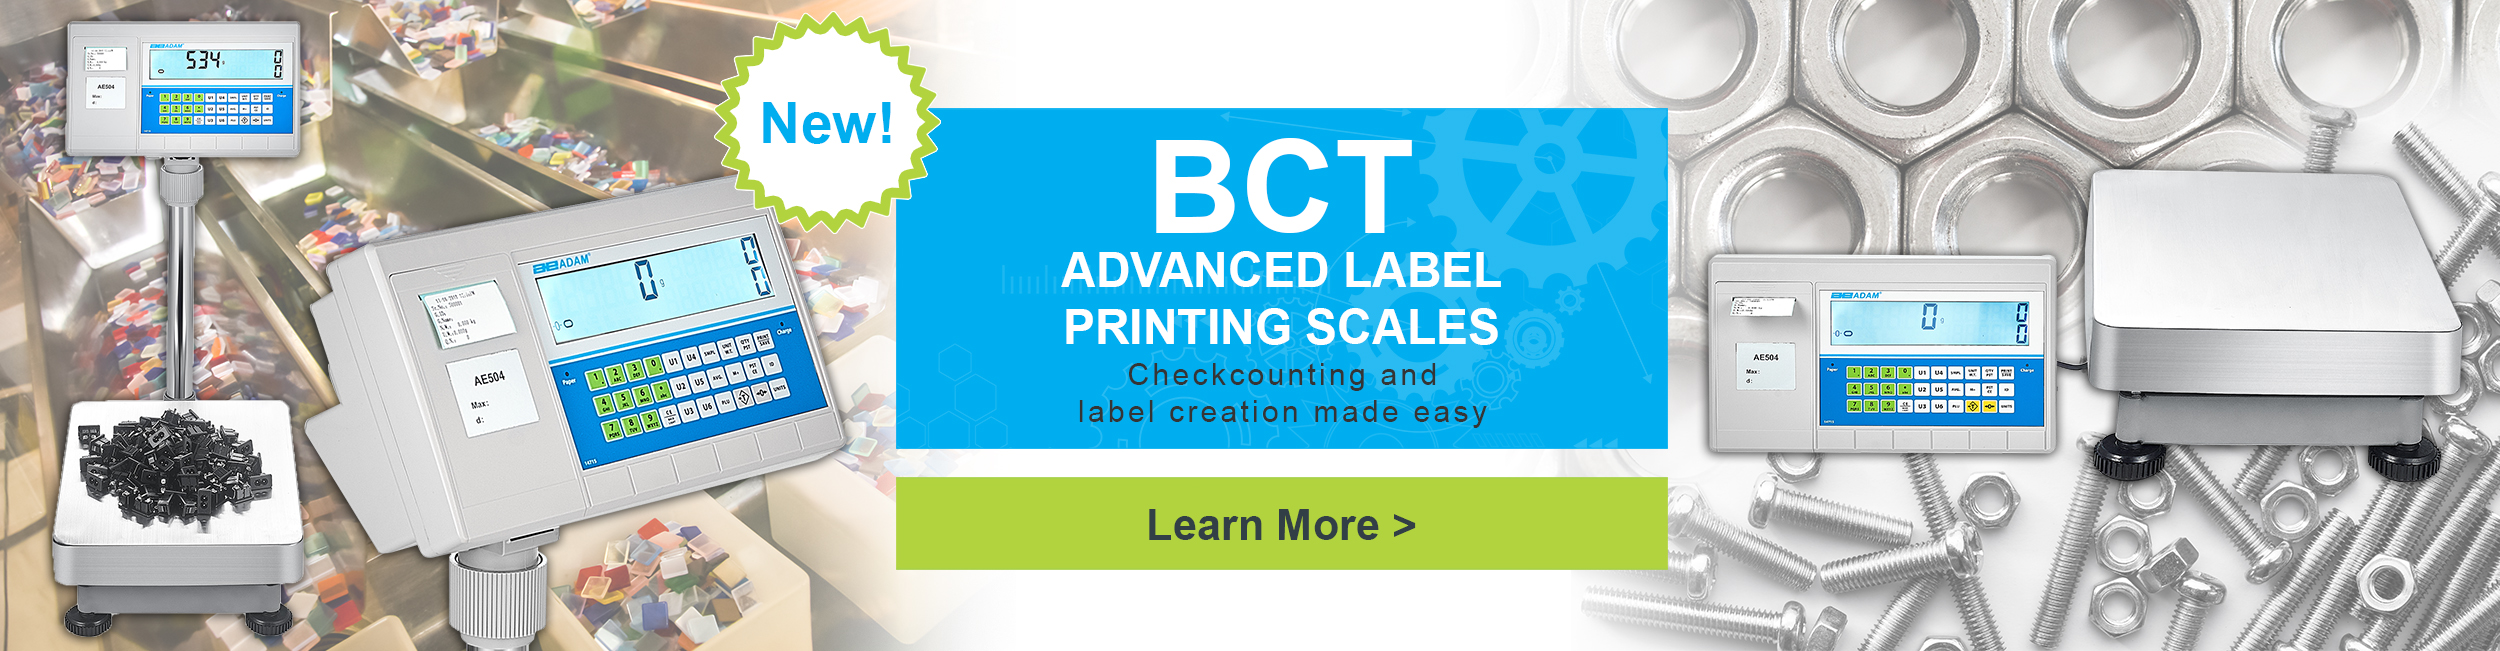 New! BCT Advanced Label Printing Scales. Checkcounting and label creation made easy.